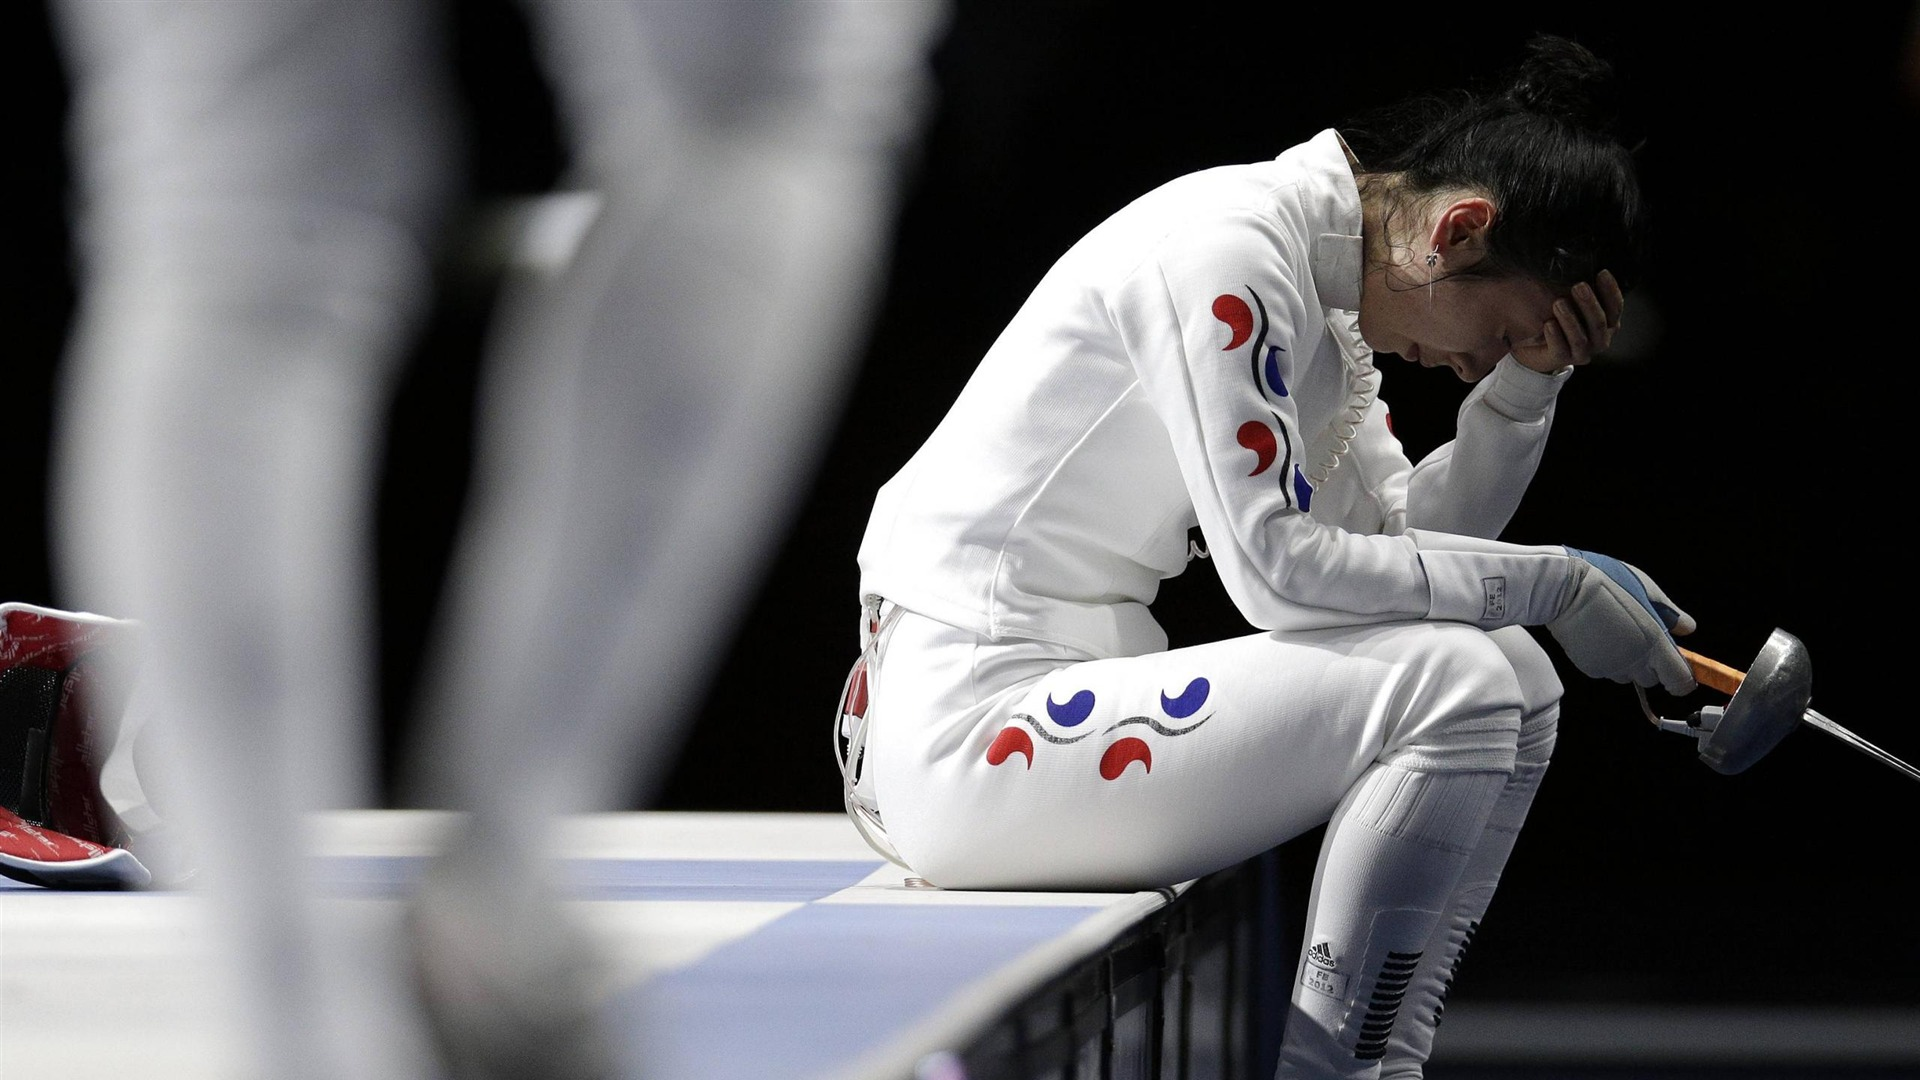 Good Fencing Wallpaper - A_Lam_Shin_Fencing-London_2012_Olympic_1920x1080  2018_928563.jpg